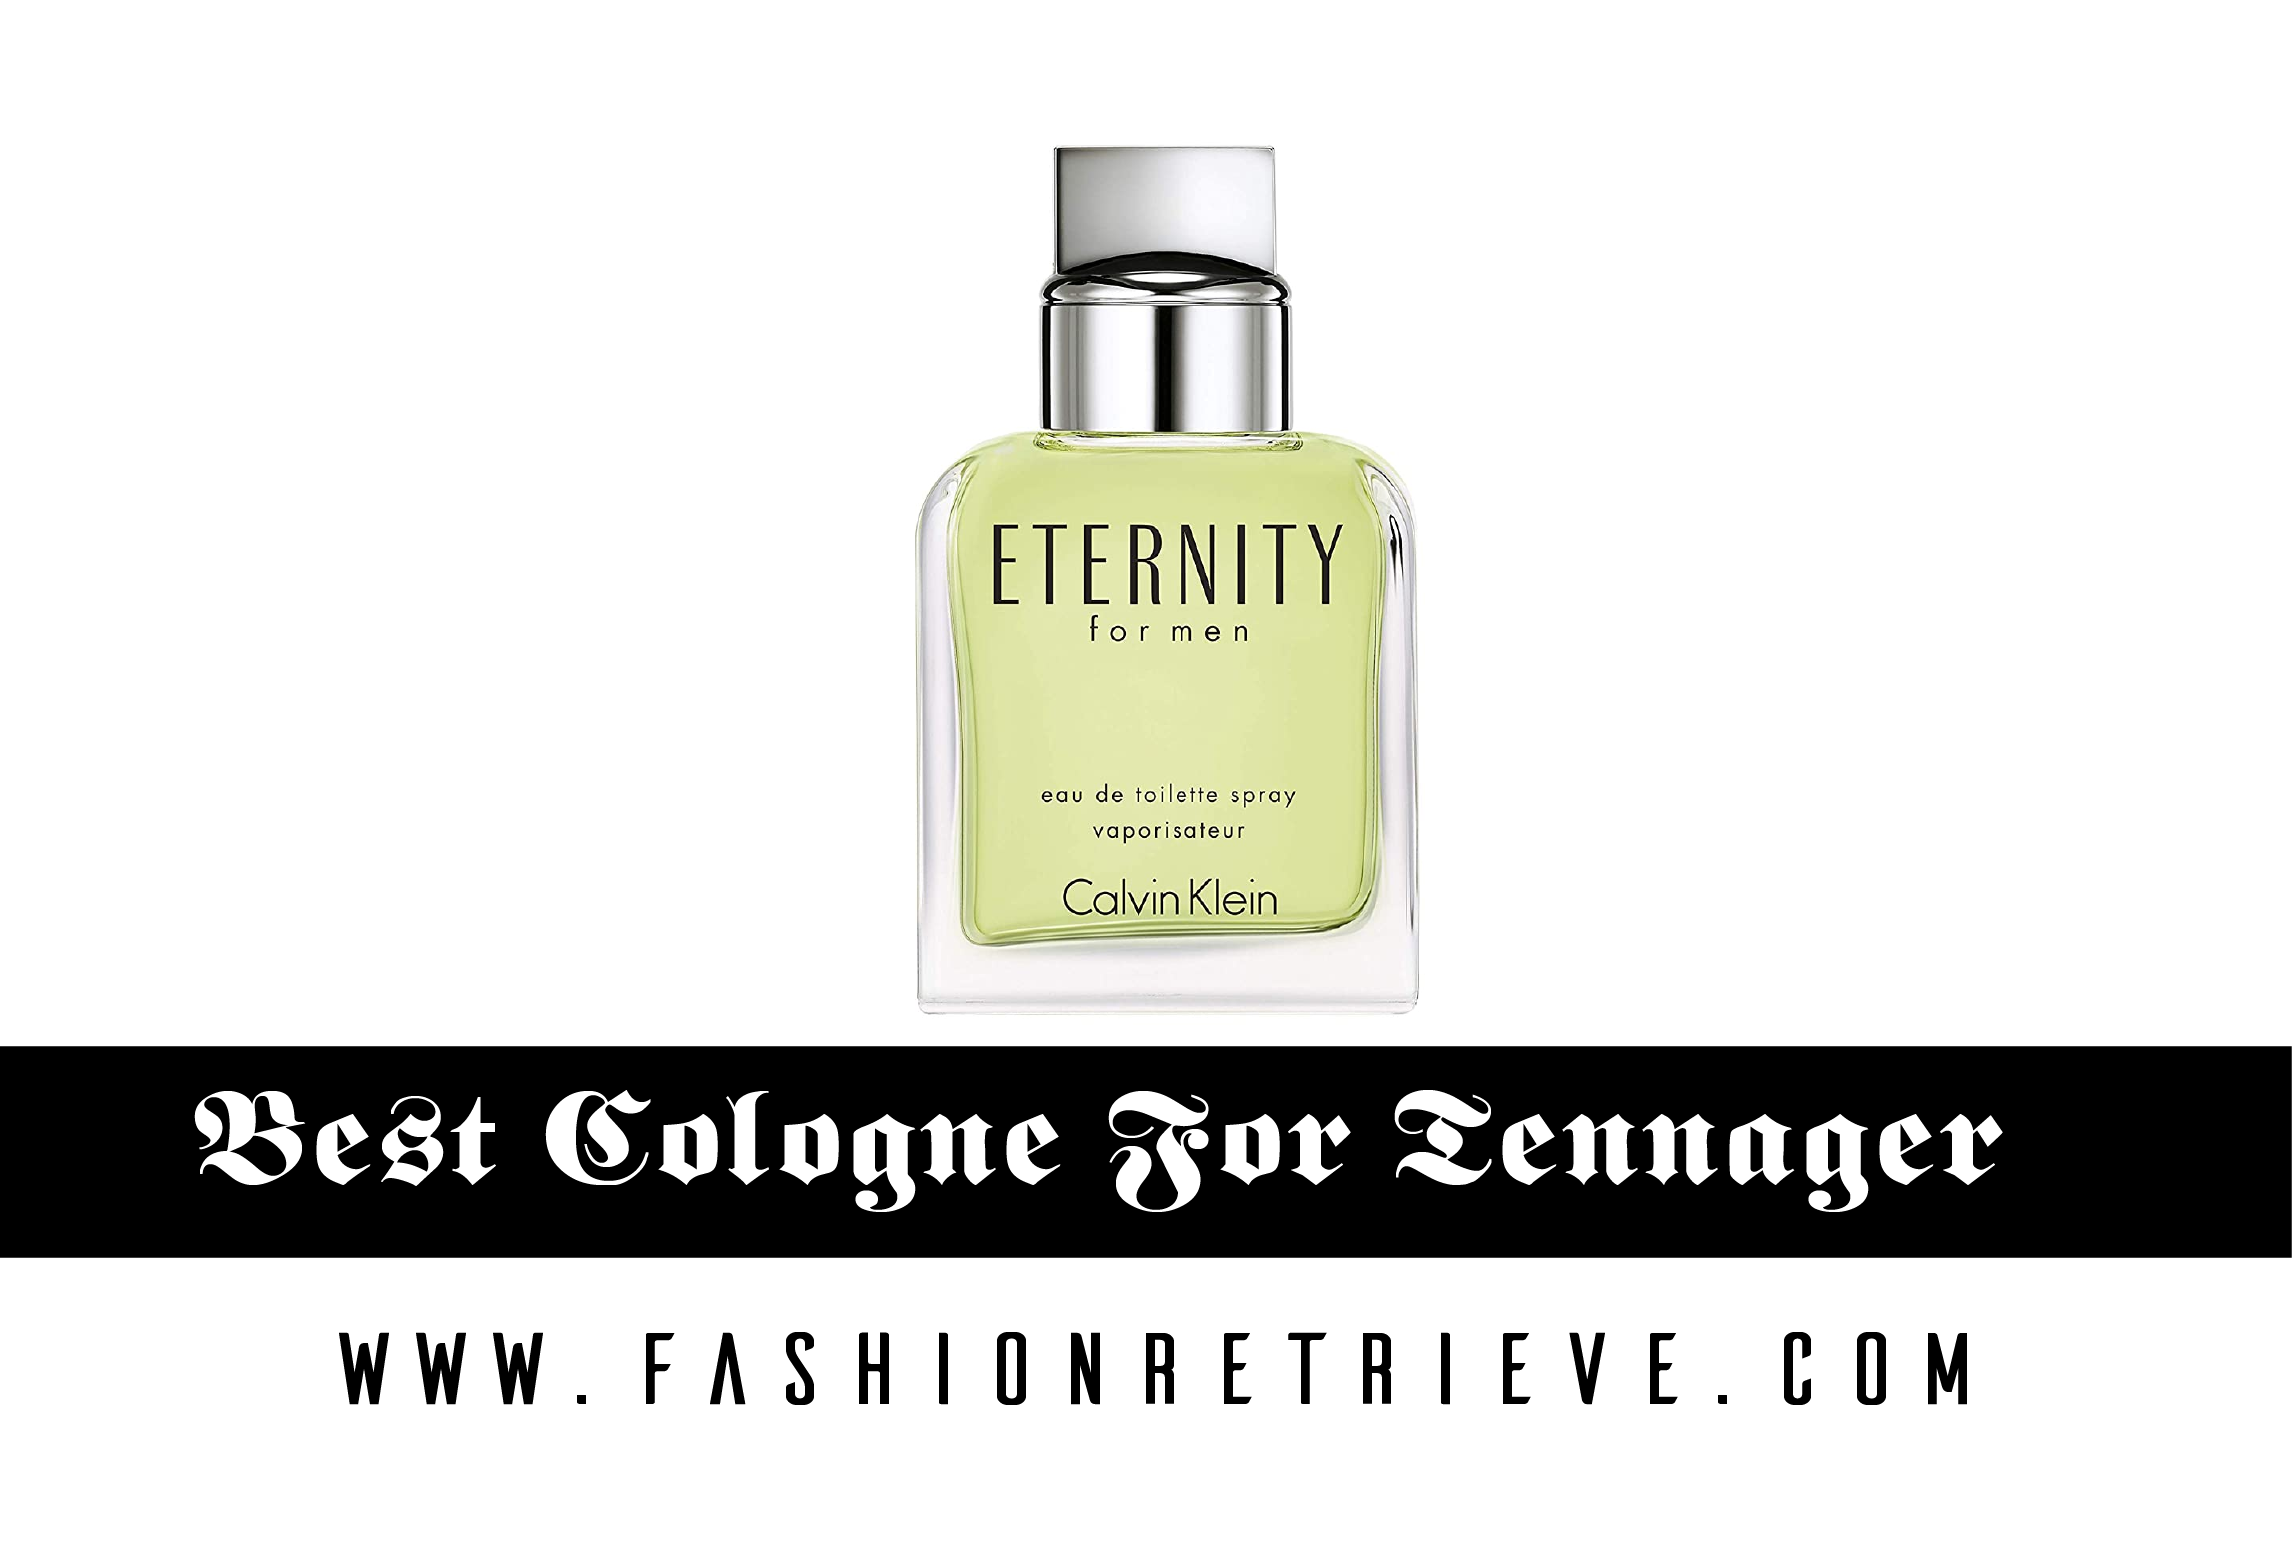 Best Cologne For Tennager